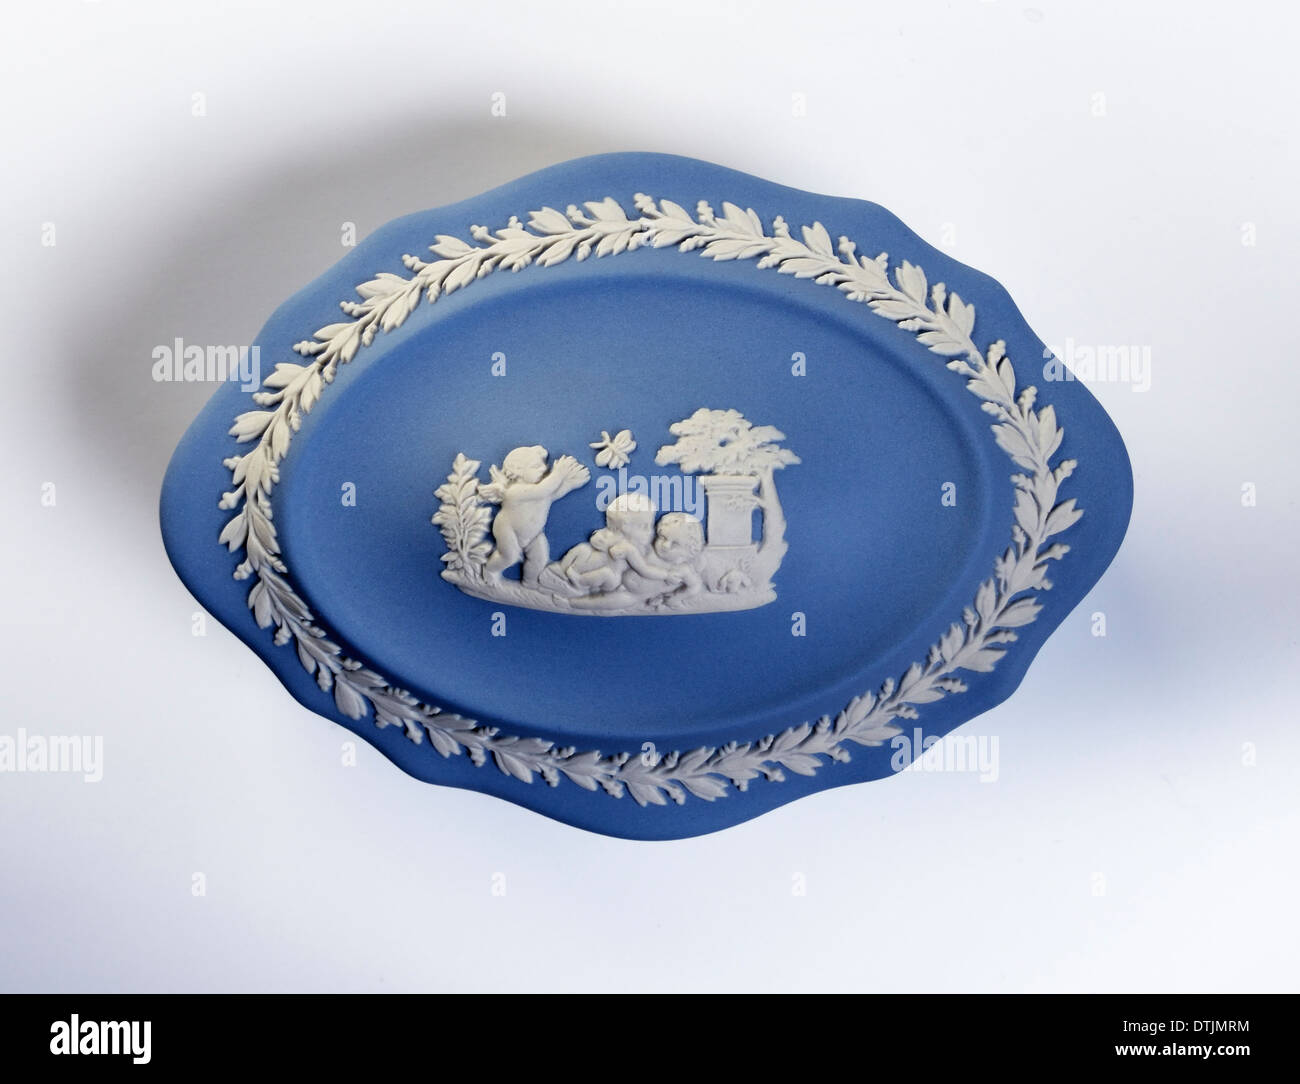 wedgwood-blue-jasperware-trinket-box-DTJMRM.jpg